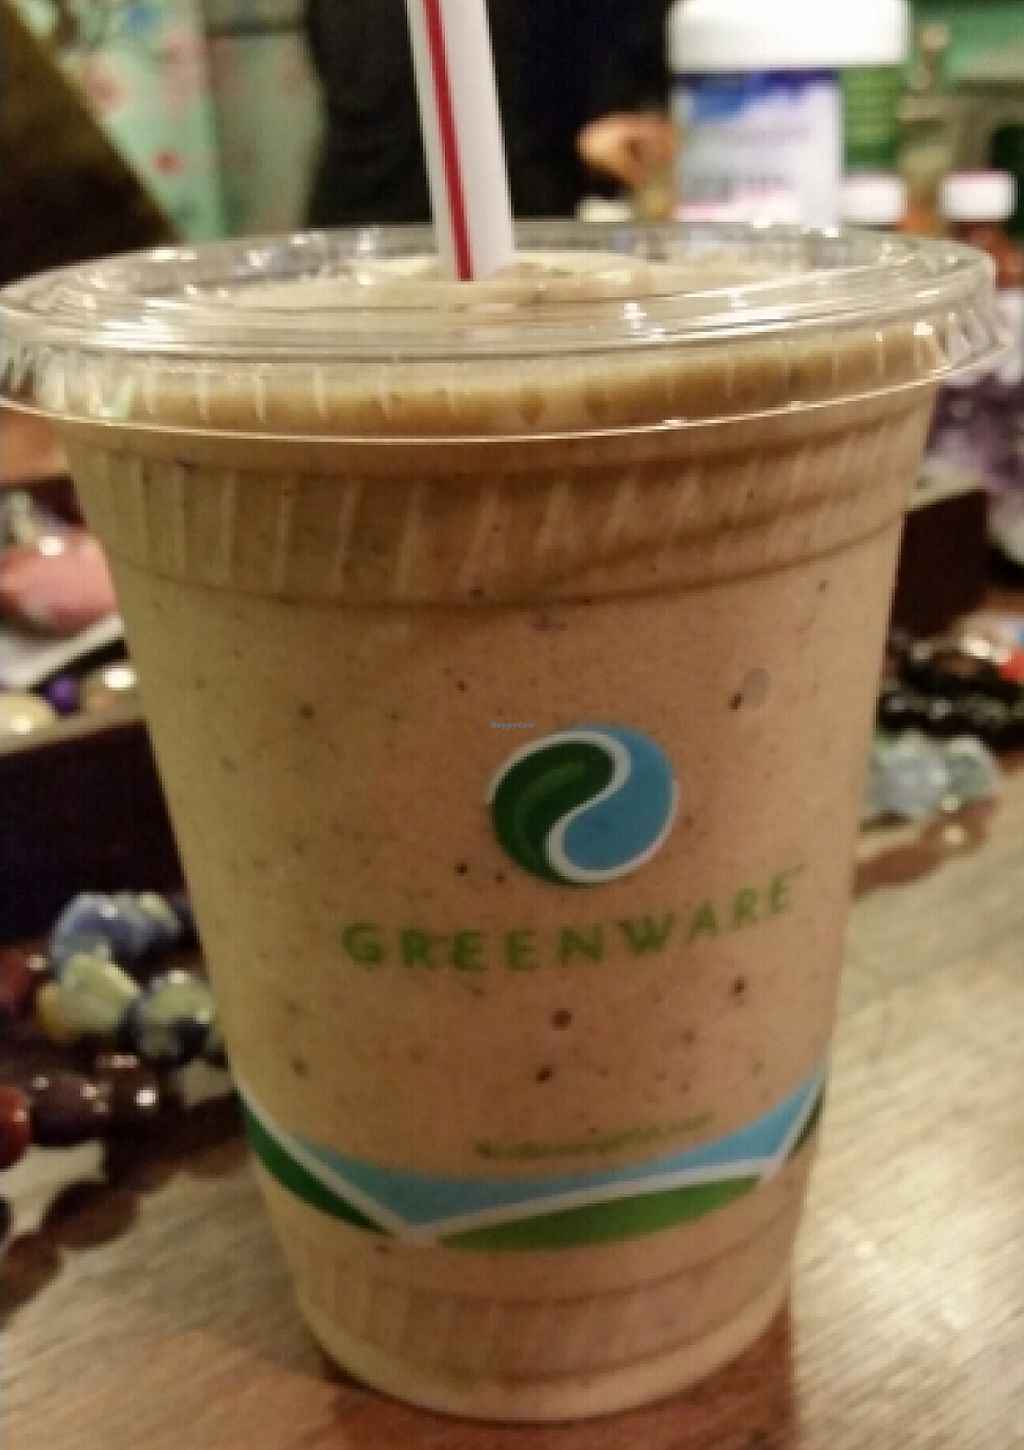 """Photo of Zen Bar  by <a href=""""/members/profile/EverydayTastiness"""">EverydayTastiness</a> <br/>Java bliss smoothie <br/> January 18, 2016  - <a href='/contact/abuse/image/49346/195561'>Report</a>"""